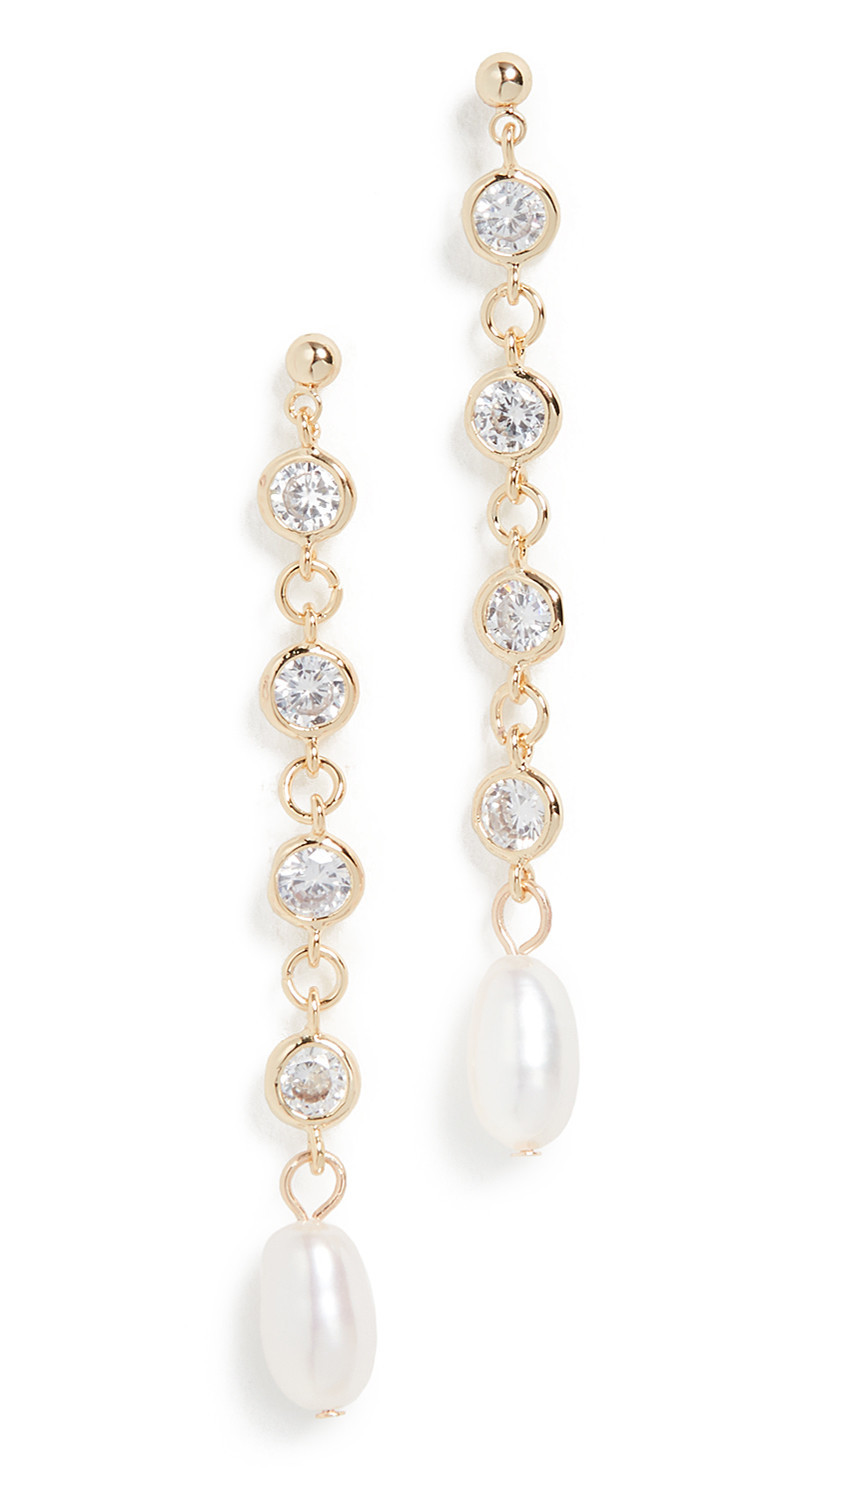 Jules Smith Bling Cultured Pearl Drop Earrings in gold / yellow